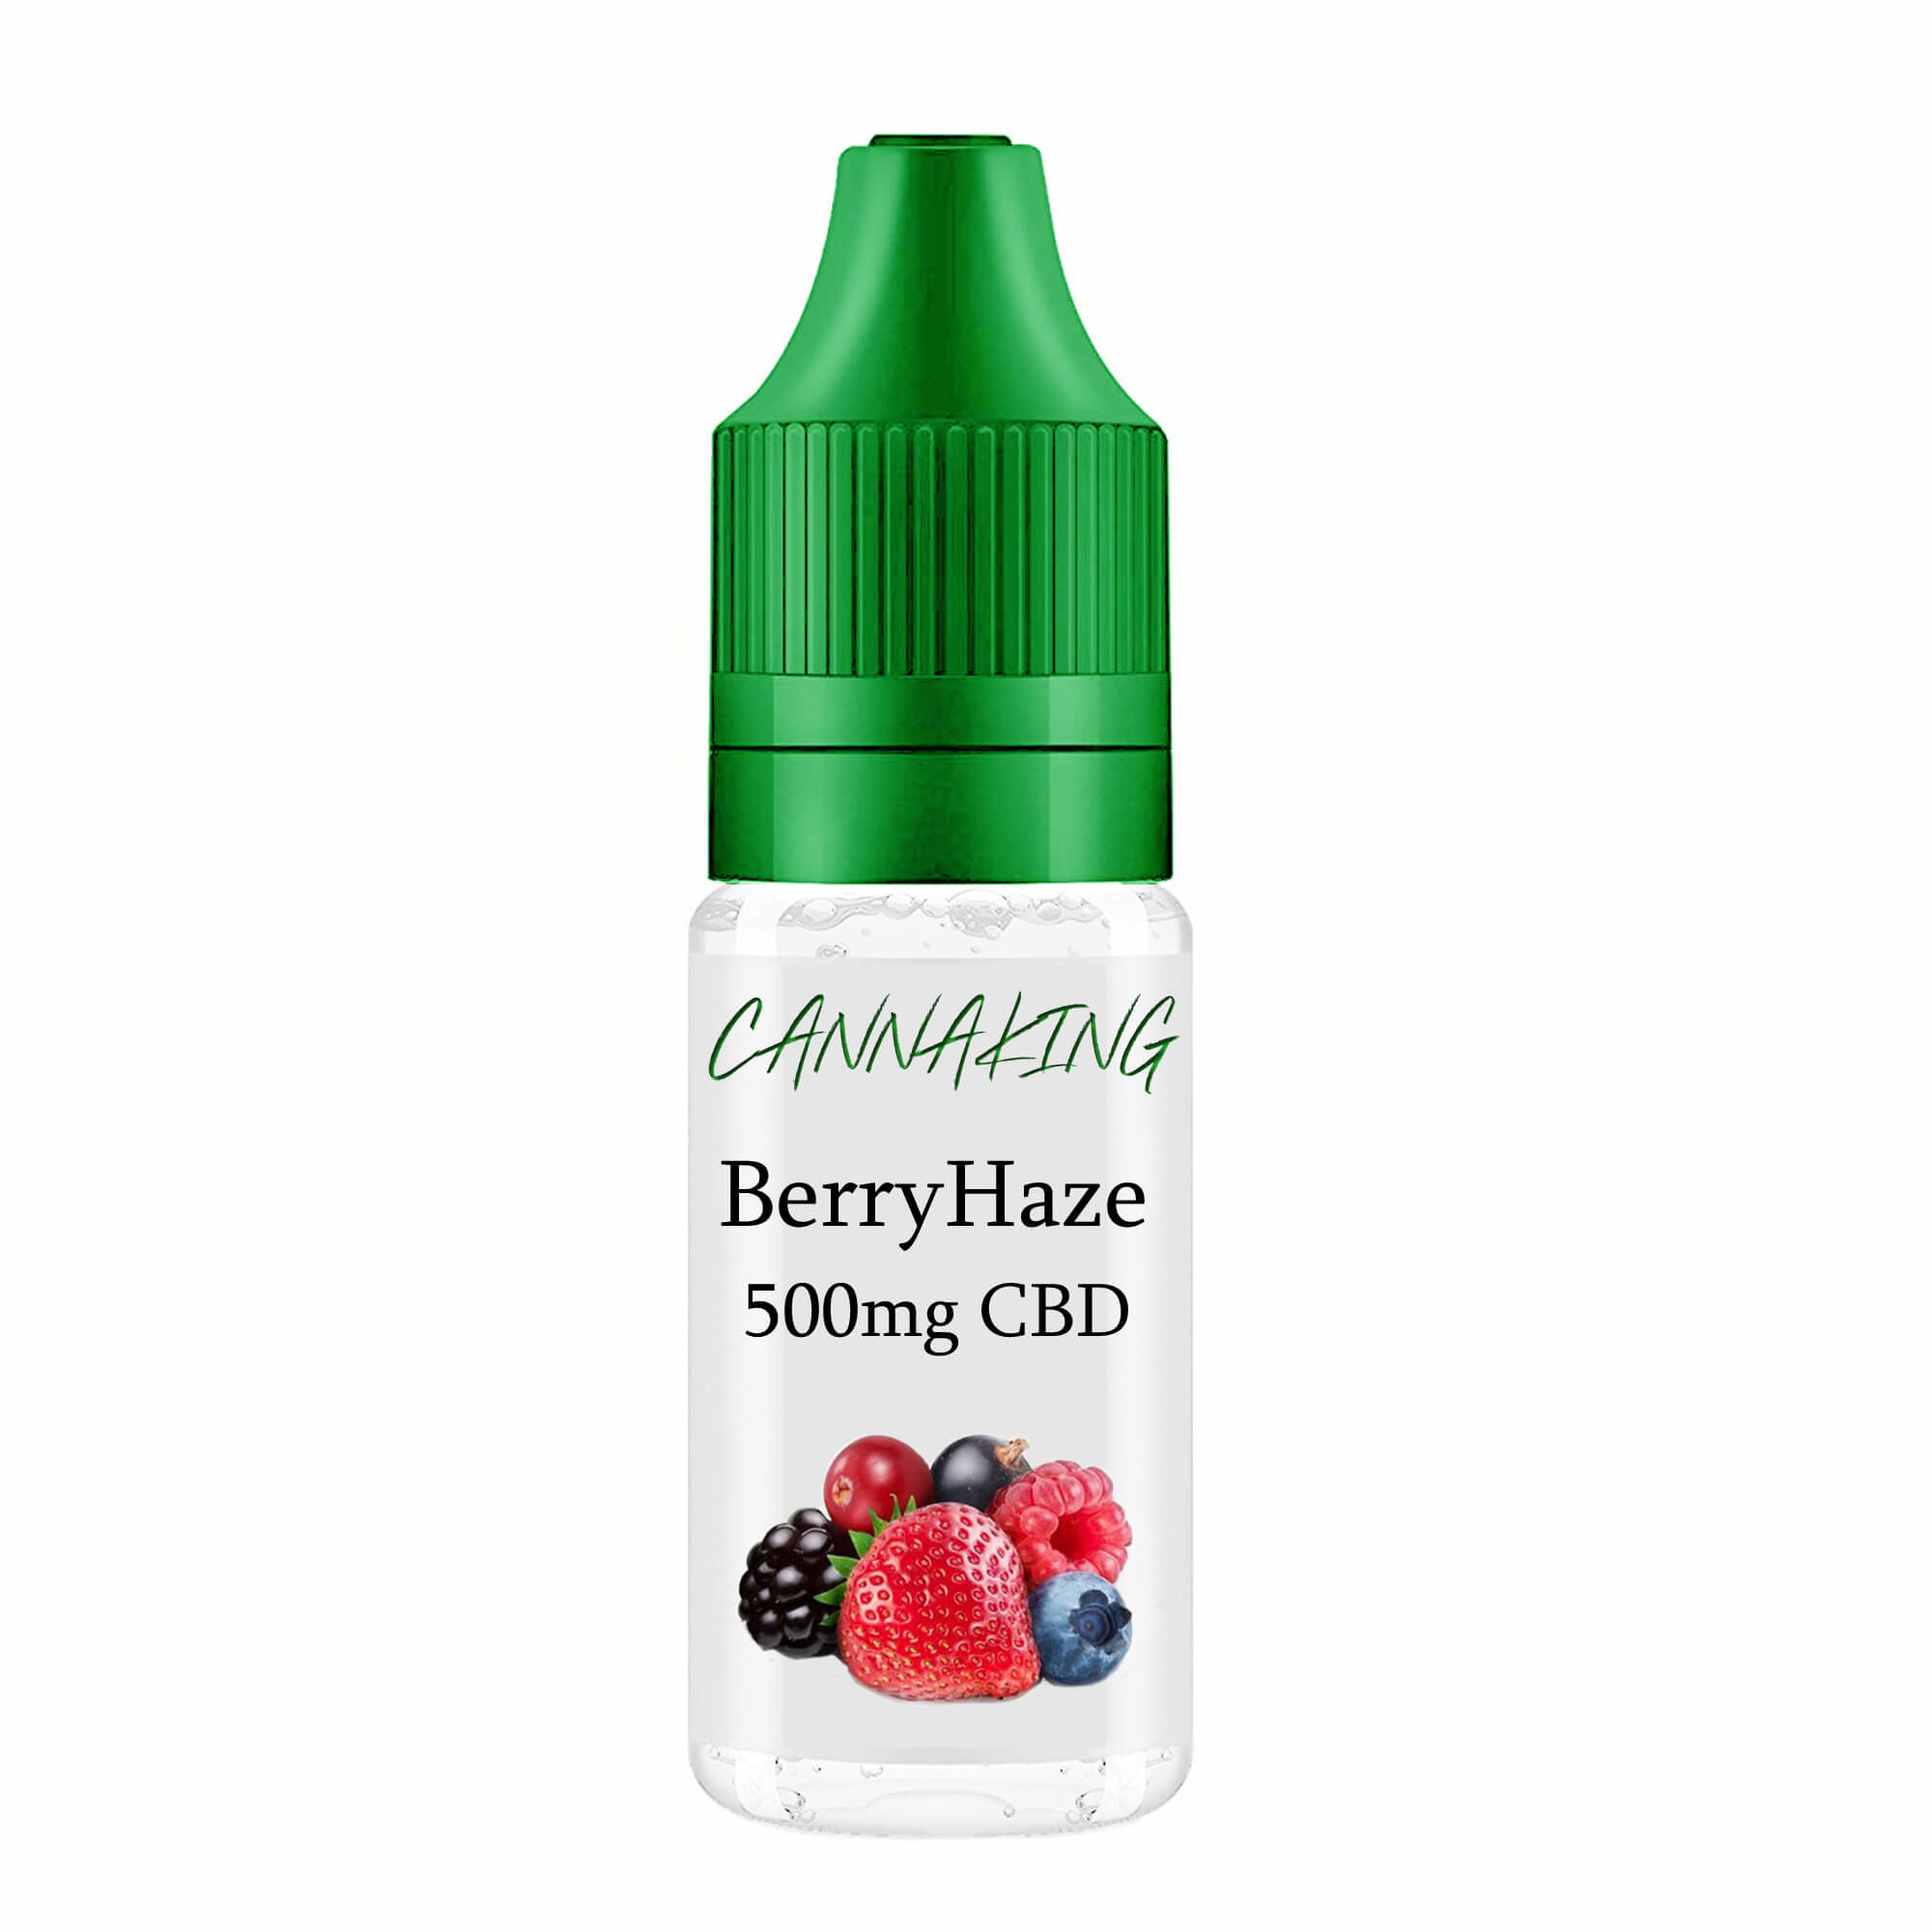 Canna King Canna King - Berry Haze 10ml CBD Liquid